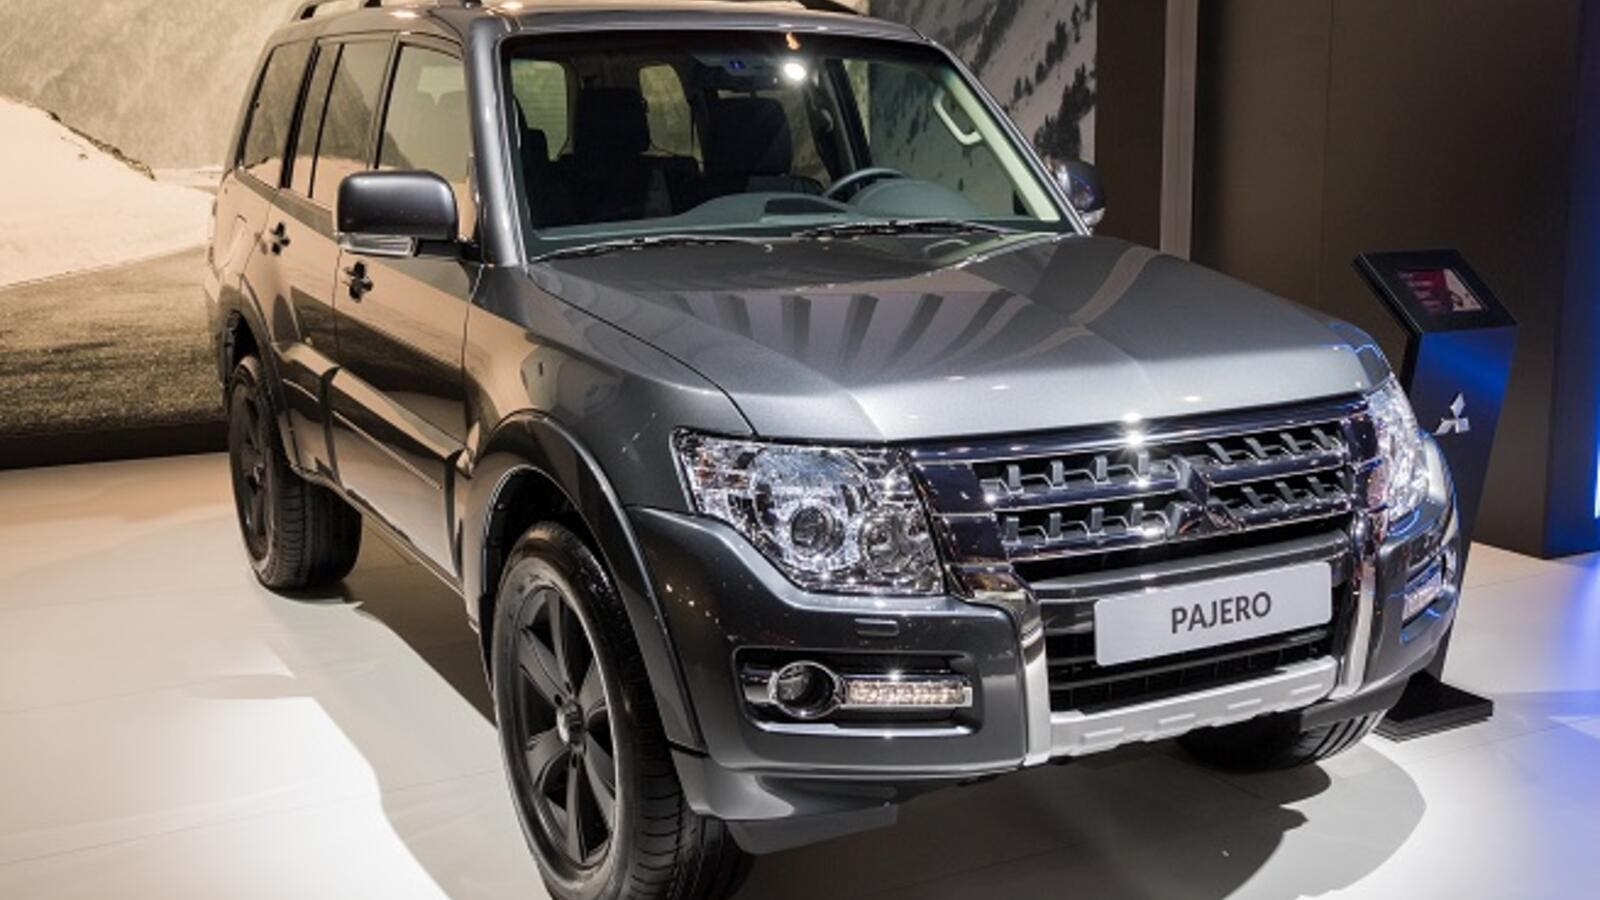 Pajero models from January 2013 to December 2017 are affected by the recall. (Shutterstock)